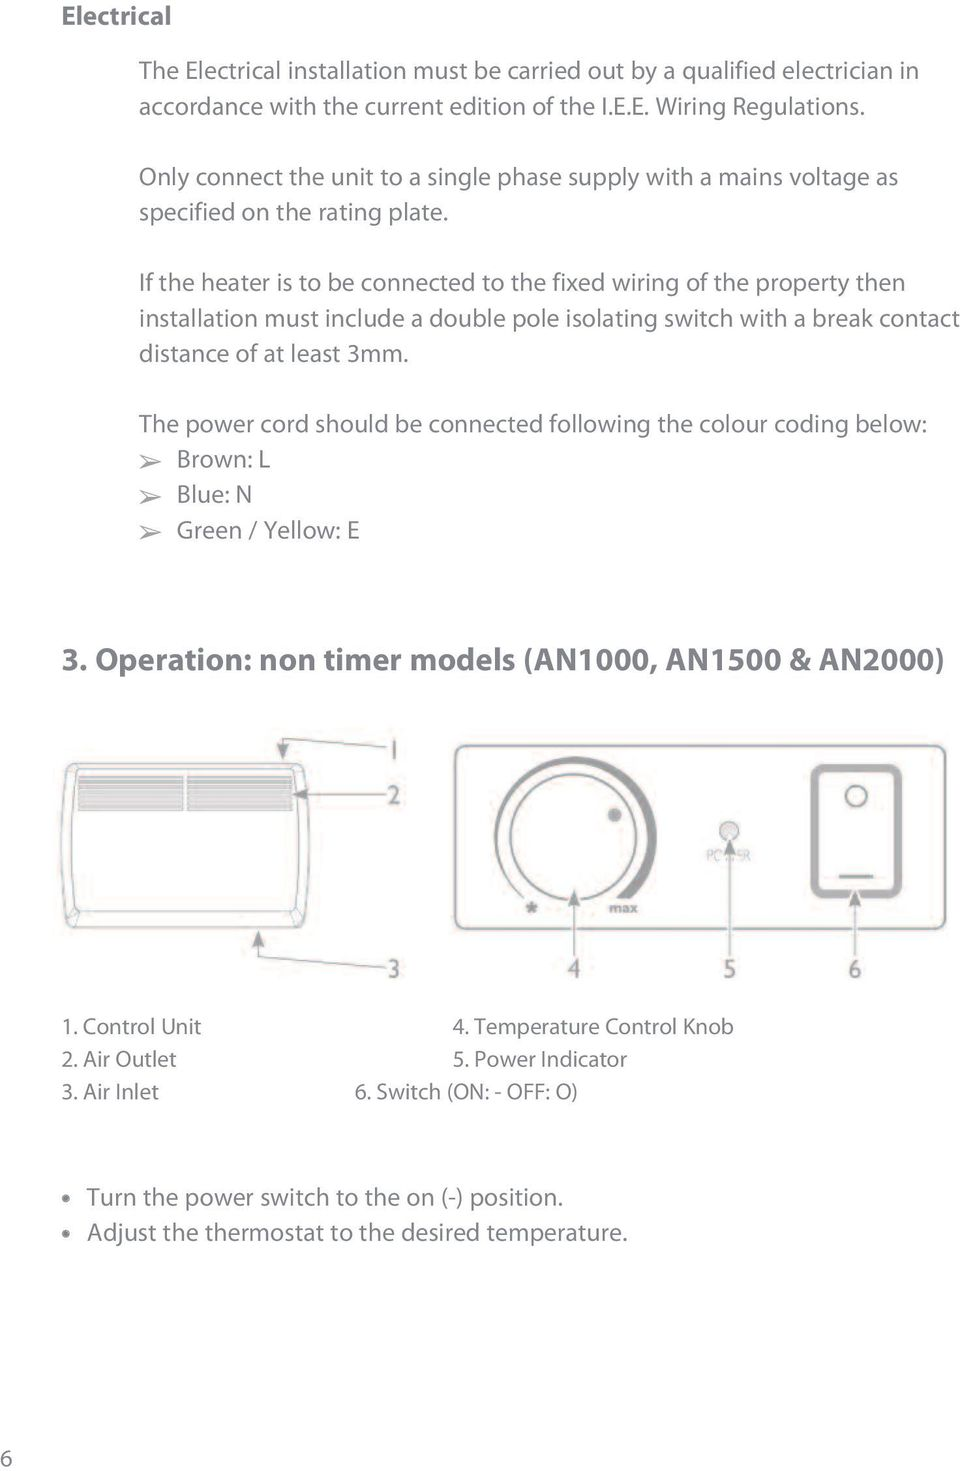 If the heater is to be connected to the fixed wiring of the property then installation must include a double pole isolating switch with a break contact distance of at least 3mm.